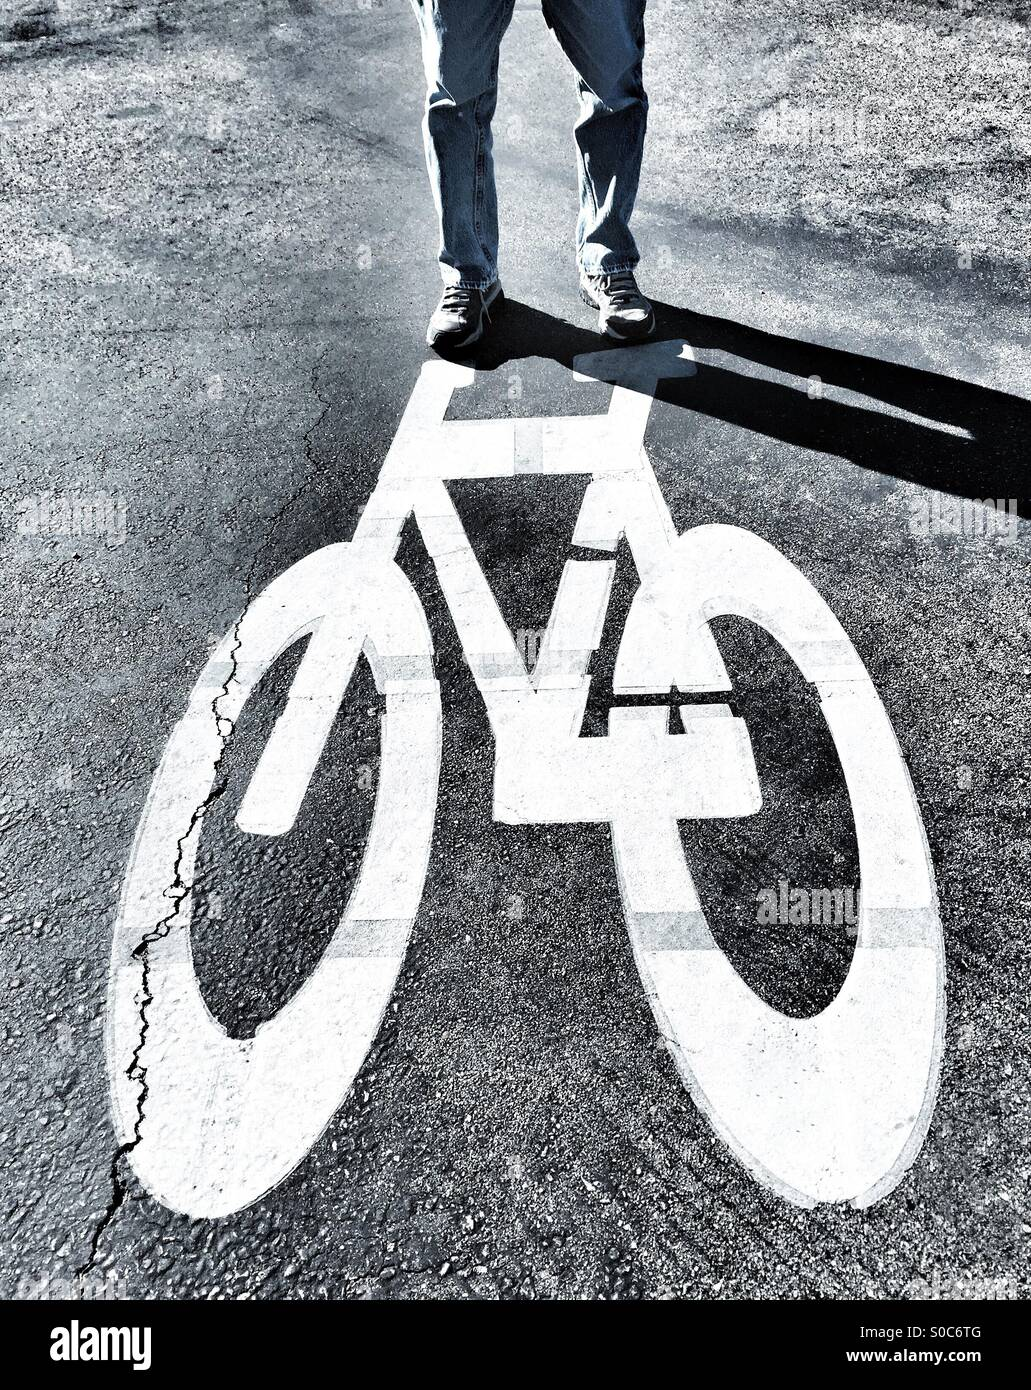 A Person Standing On Top Of A Painted Bicycle On The Ground - Stock Image